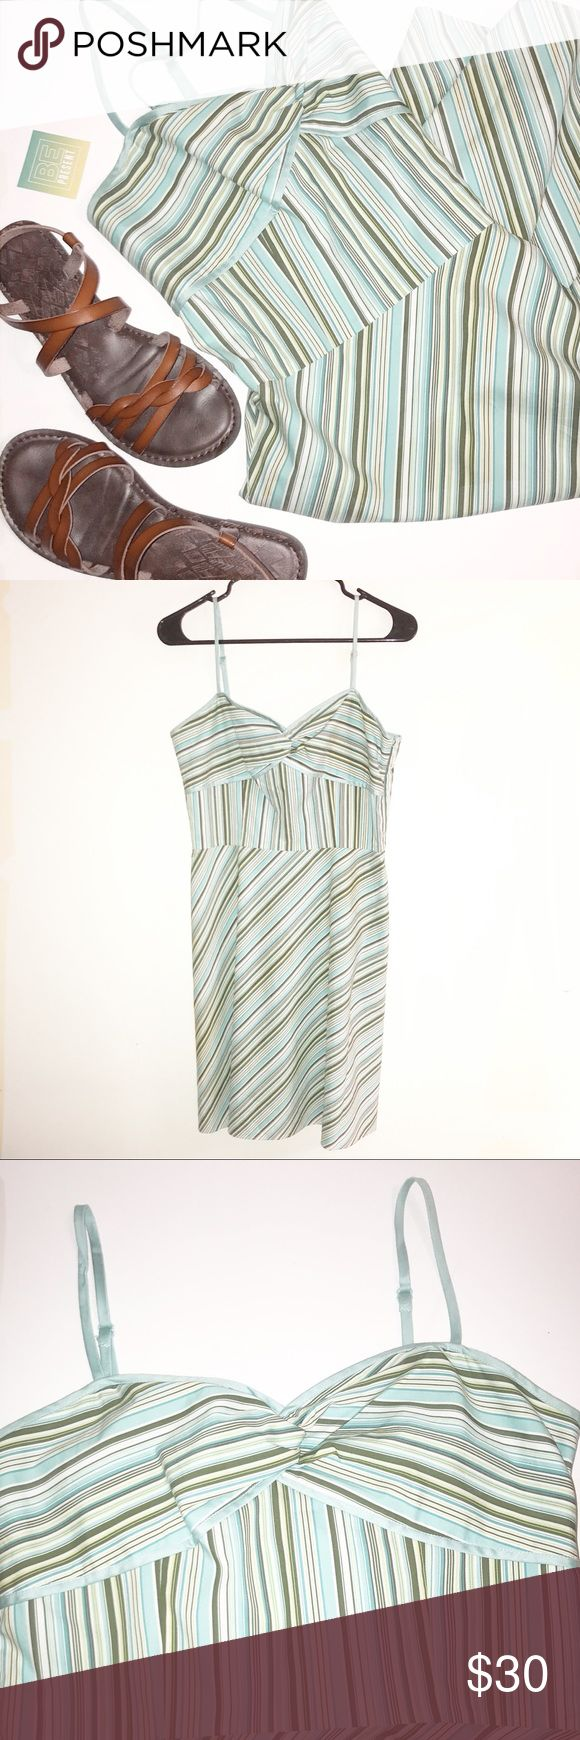 Ann Taylor Loft Dress Size 8 Petite Adorable Ann Taylor Loft spaghetti strap dress size 8petite. Gently used, EUC. No known wear- please see pictures. Great summer dress! Ann Taylor Loft Dresses